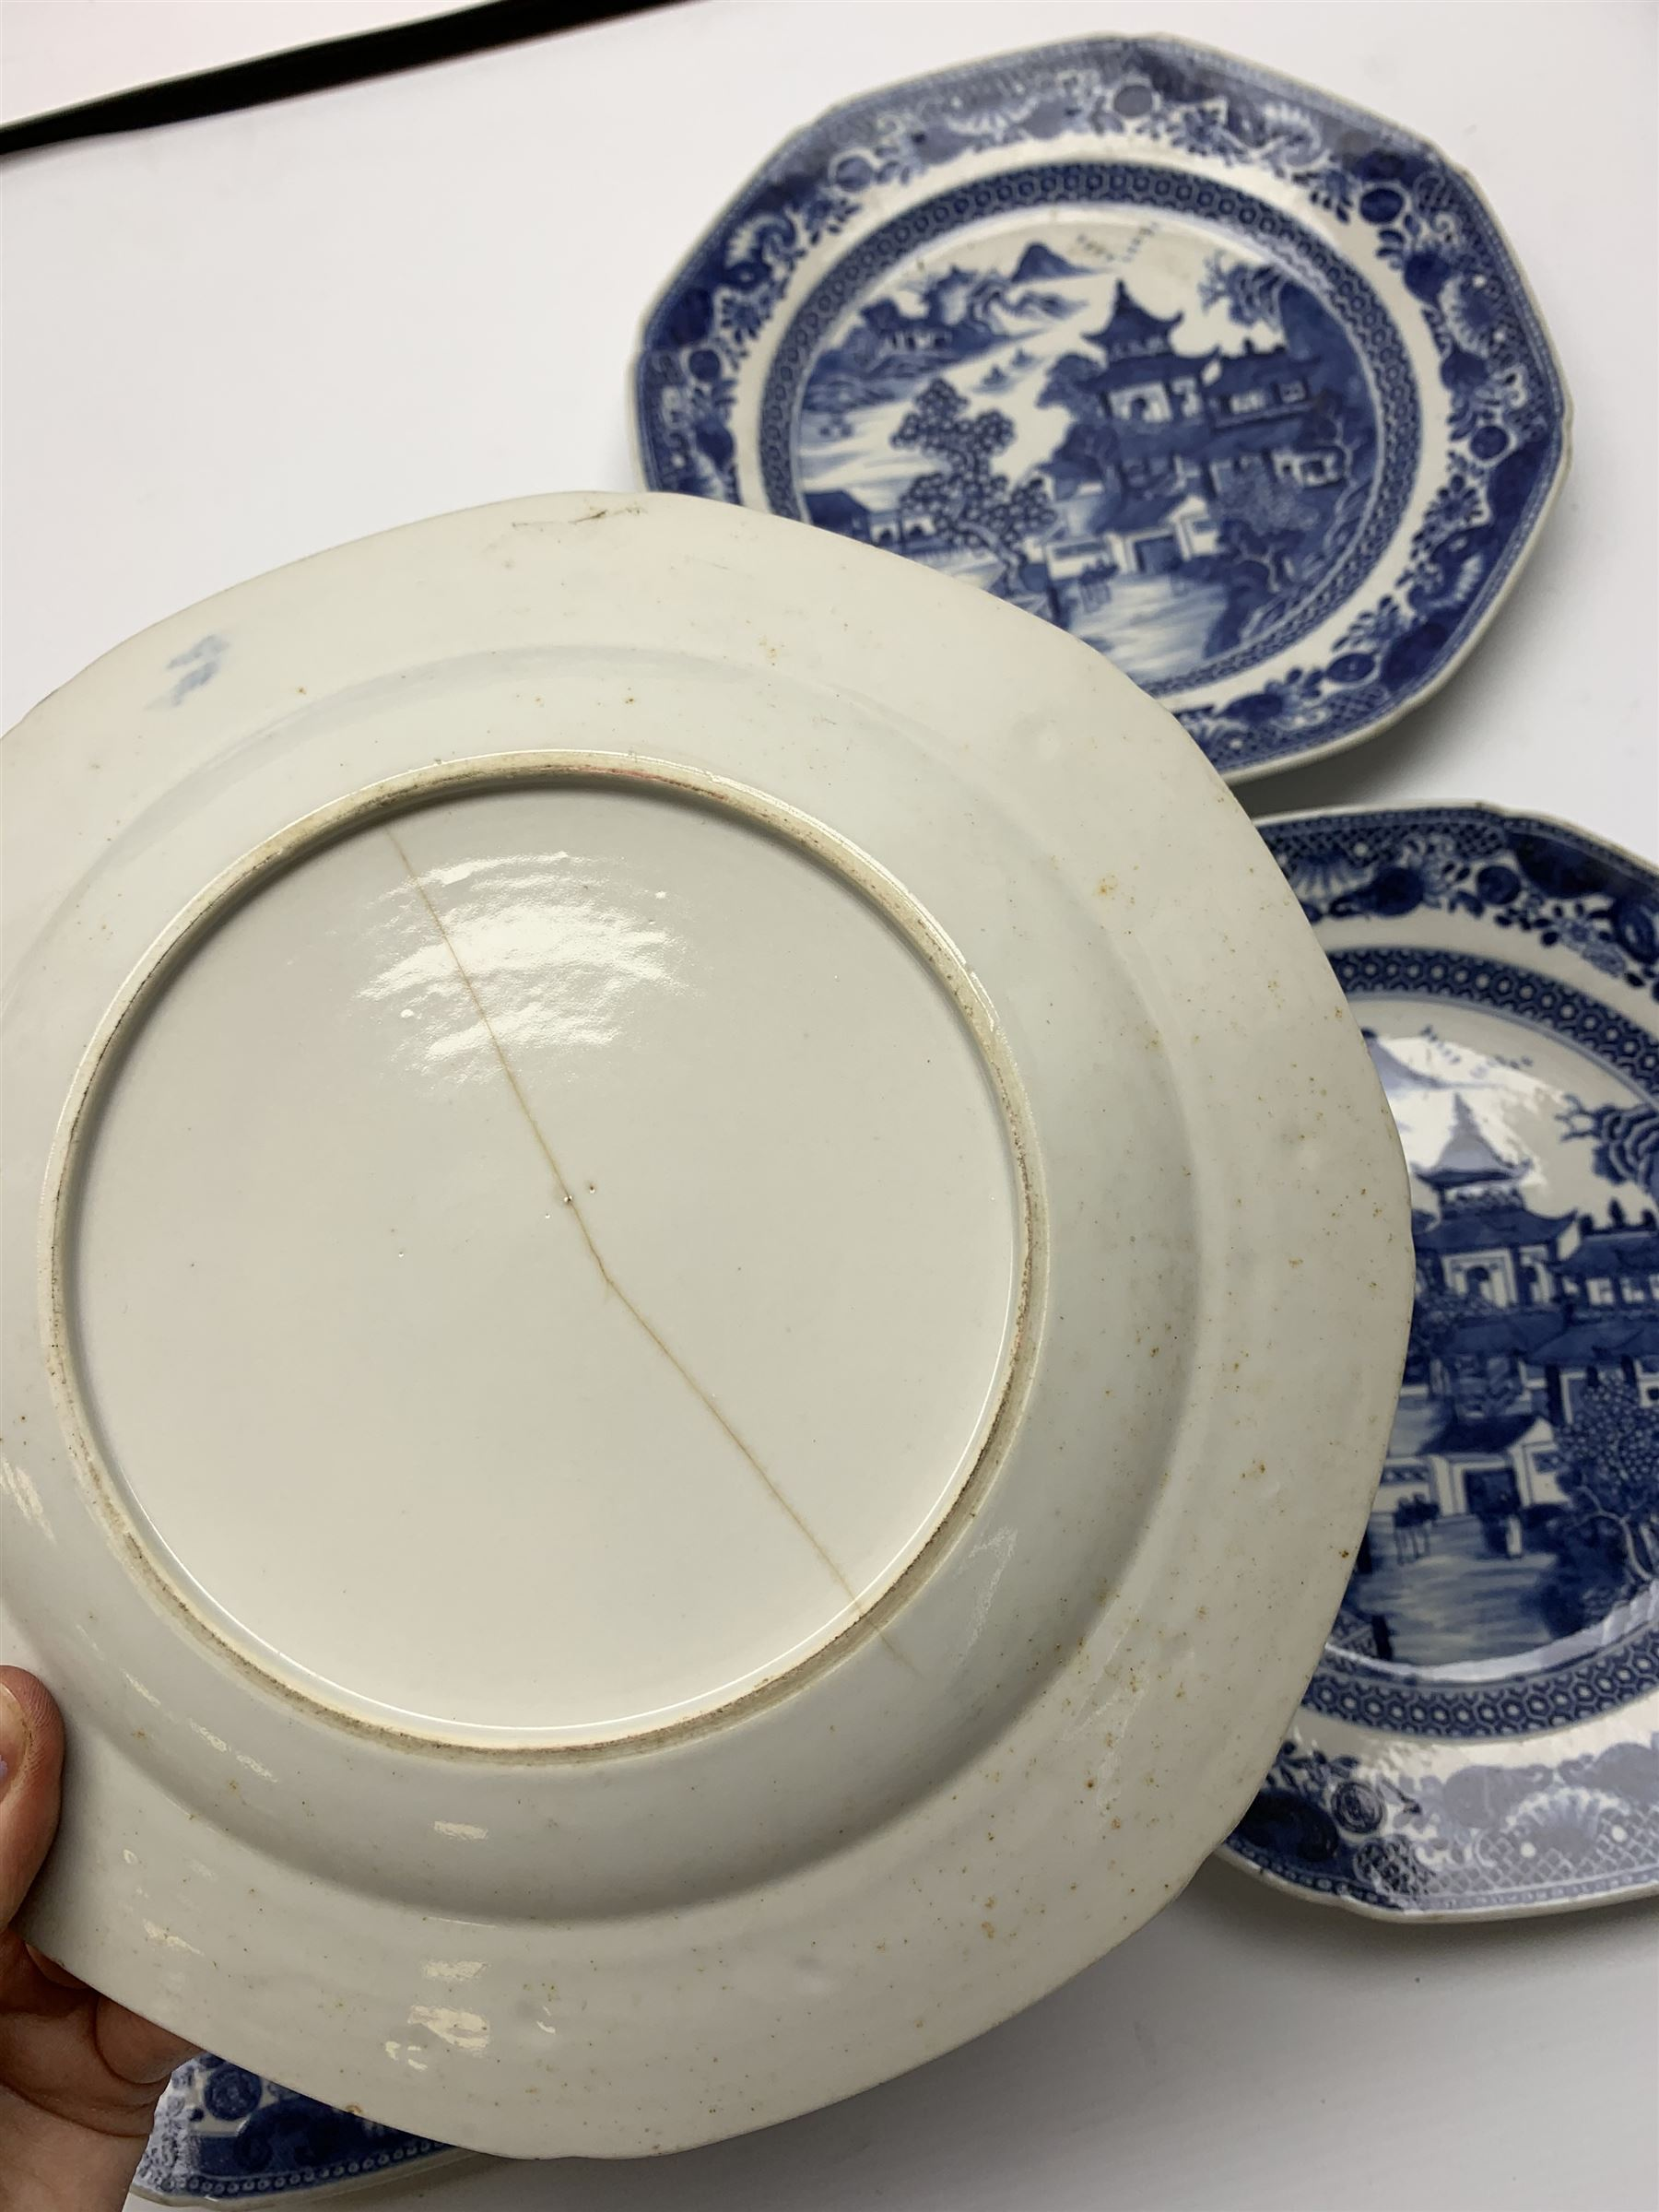 Late 18th/early 19th century Chinese export blue and white forty seven piece part dinner service - Image 19 of 20